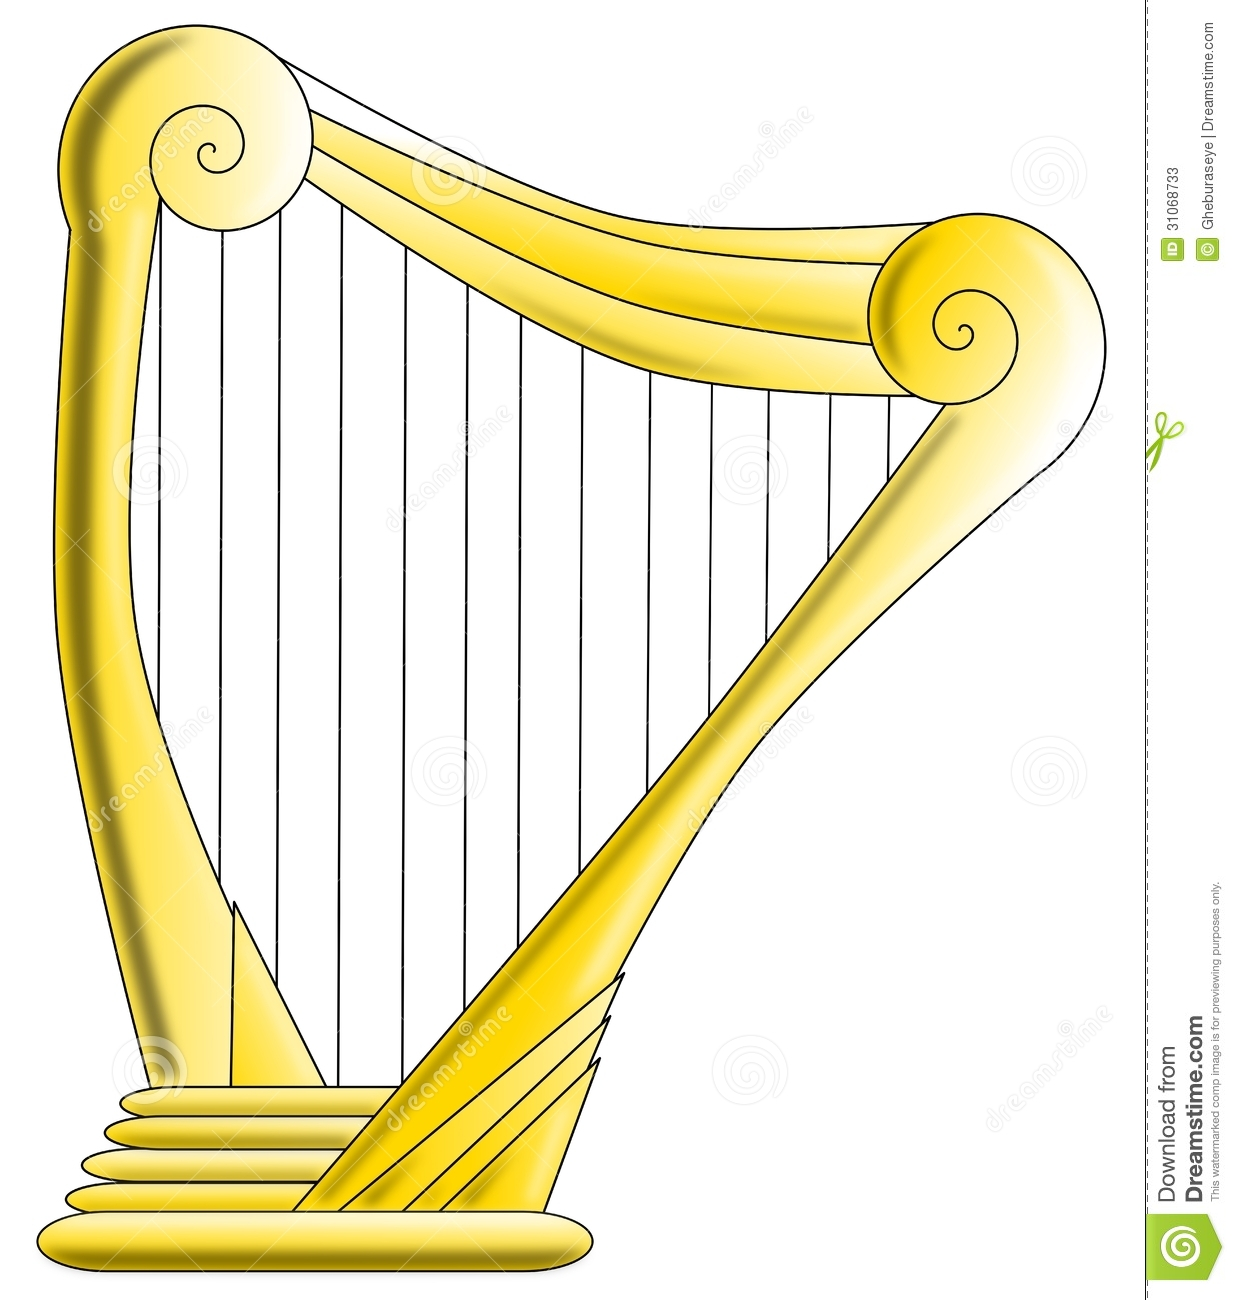 Image representing an isolated harp made with gold.